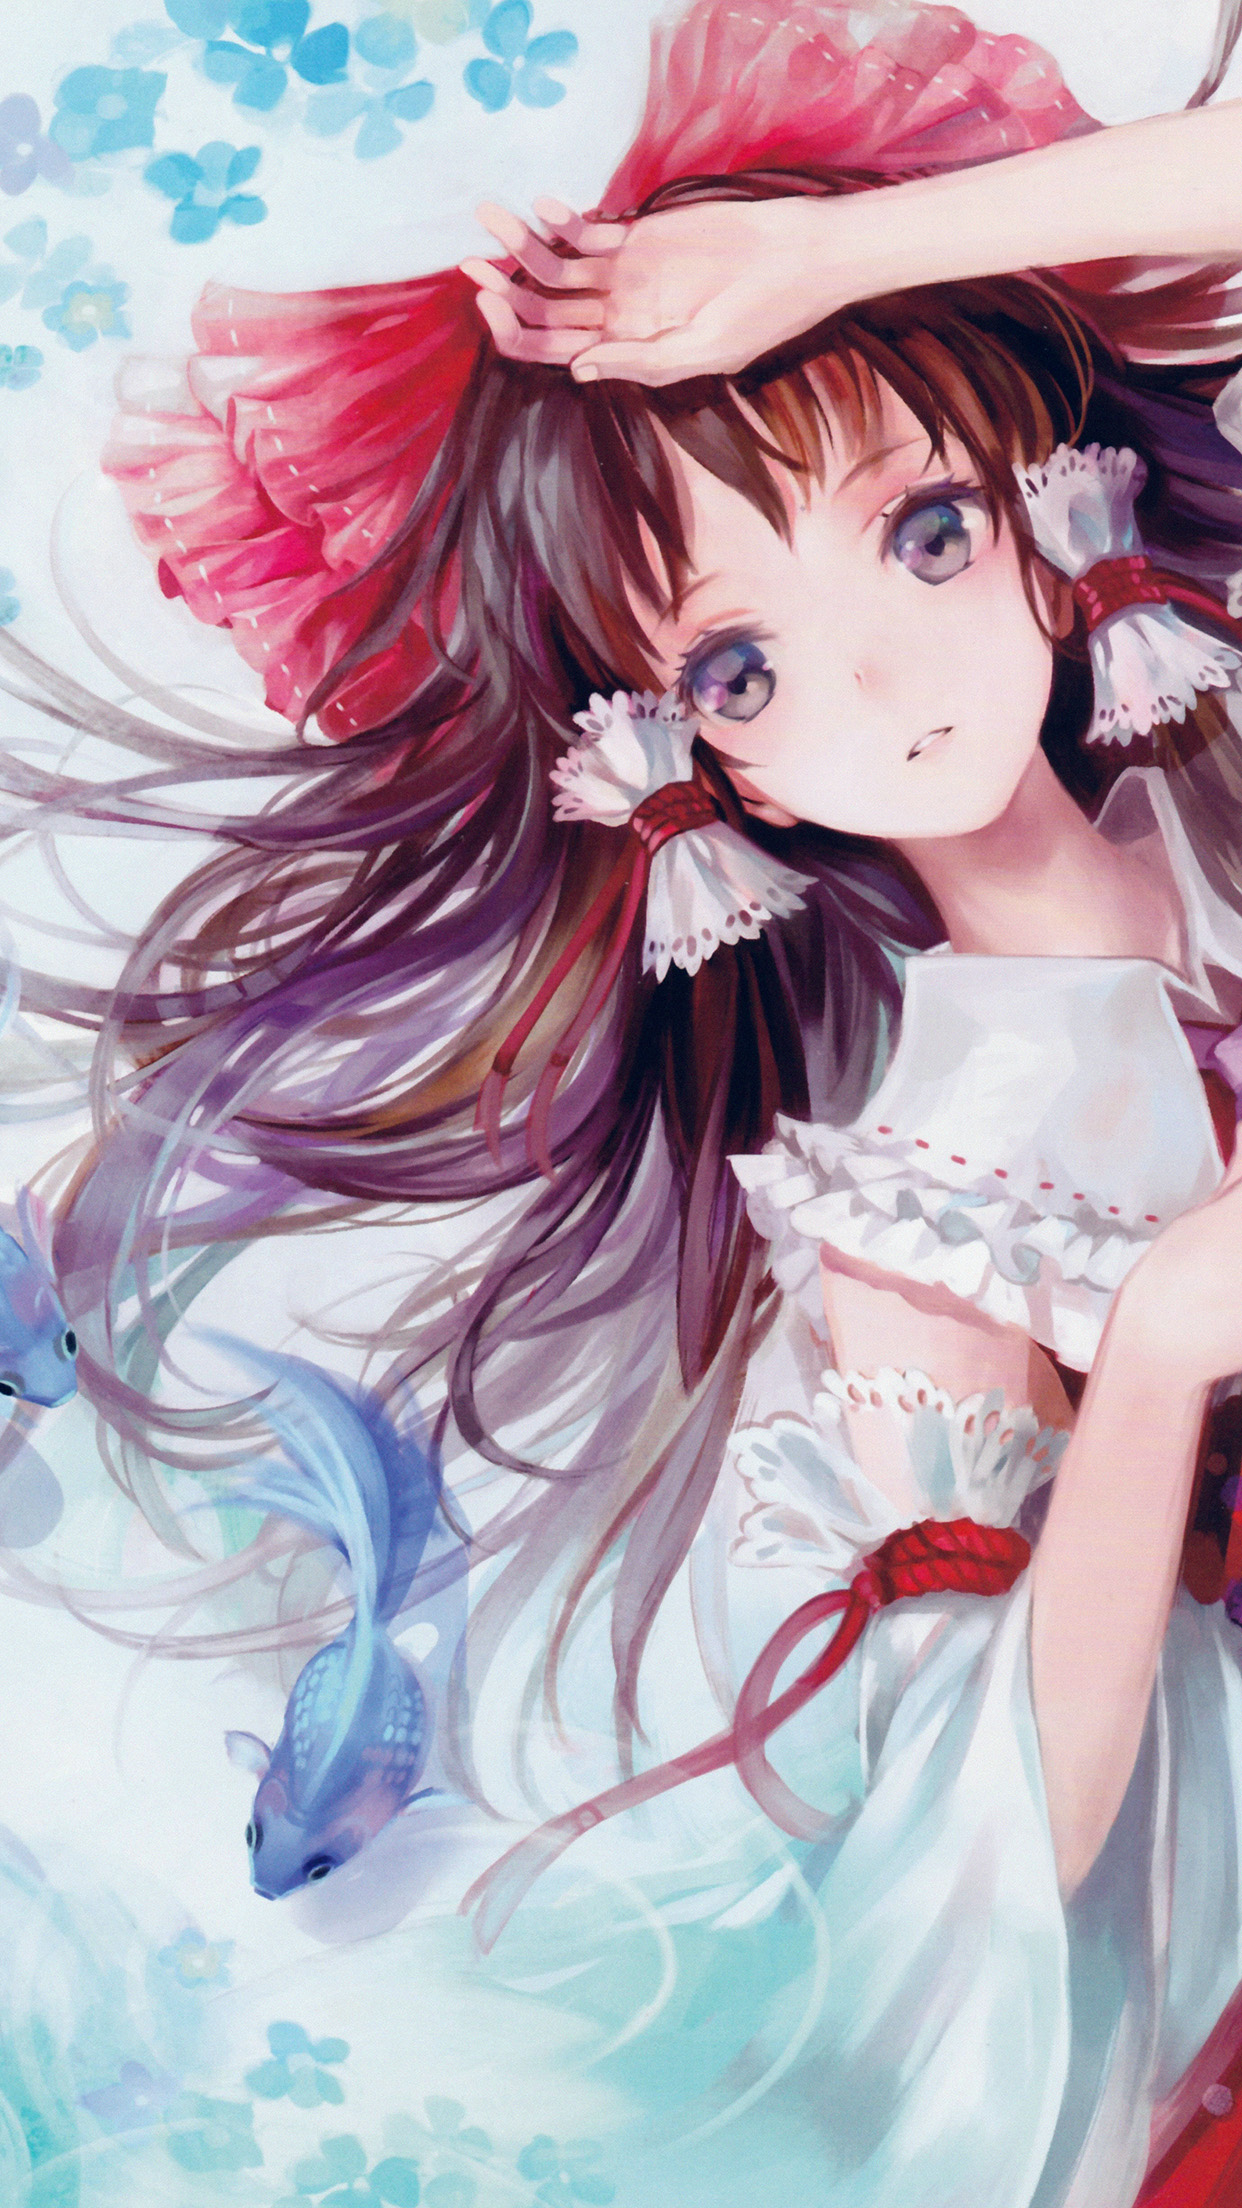 Paperland live wallpaper · 5. Anime Art Paint Girl Cute Android wallpaper - Android HD ...